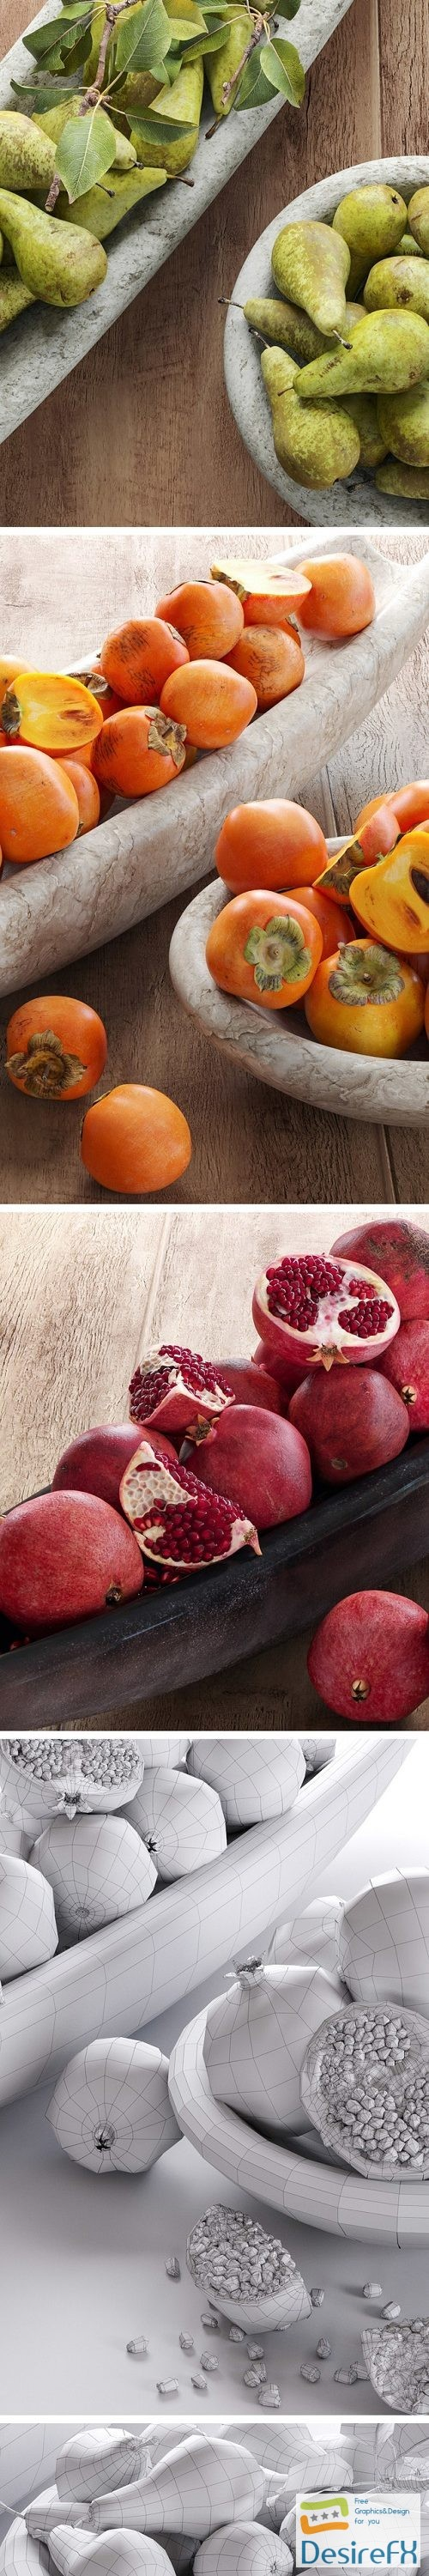 Fruits - pomegranate, figs, persimmon 3D Model